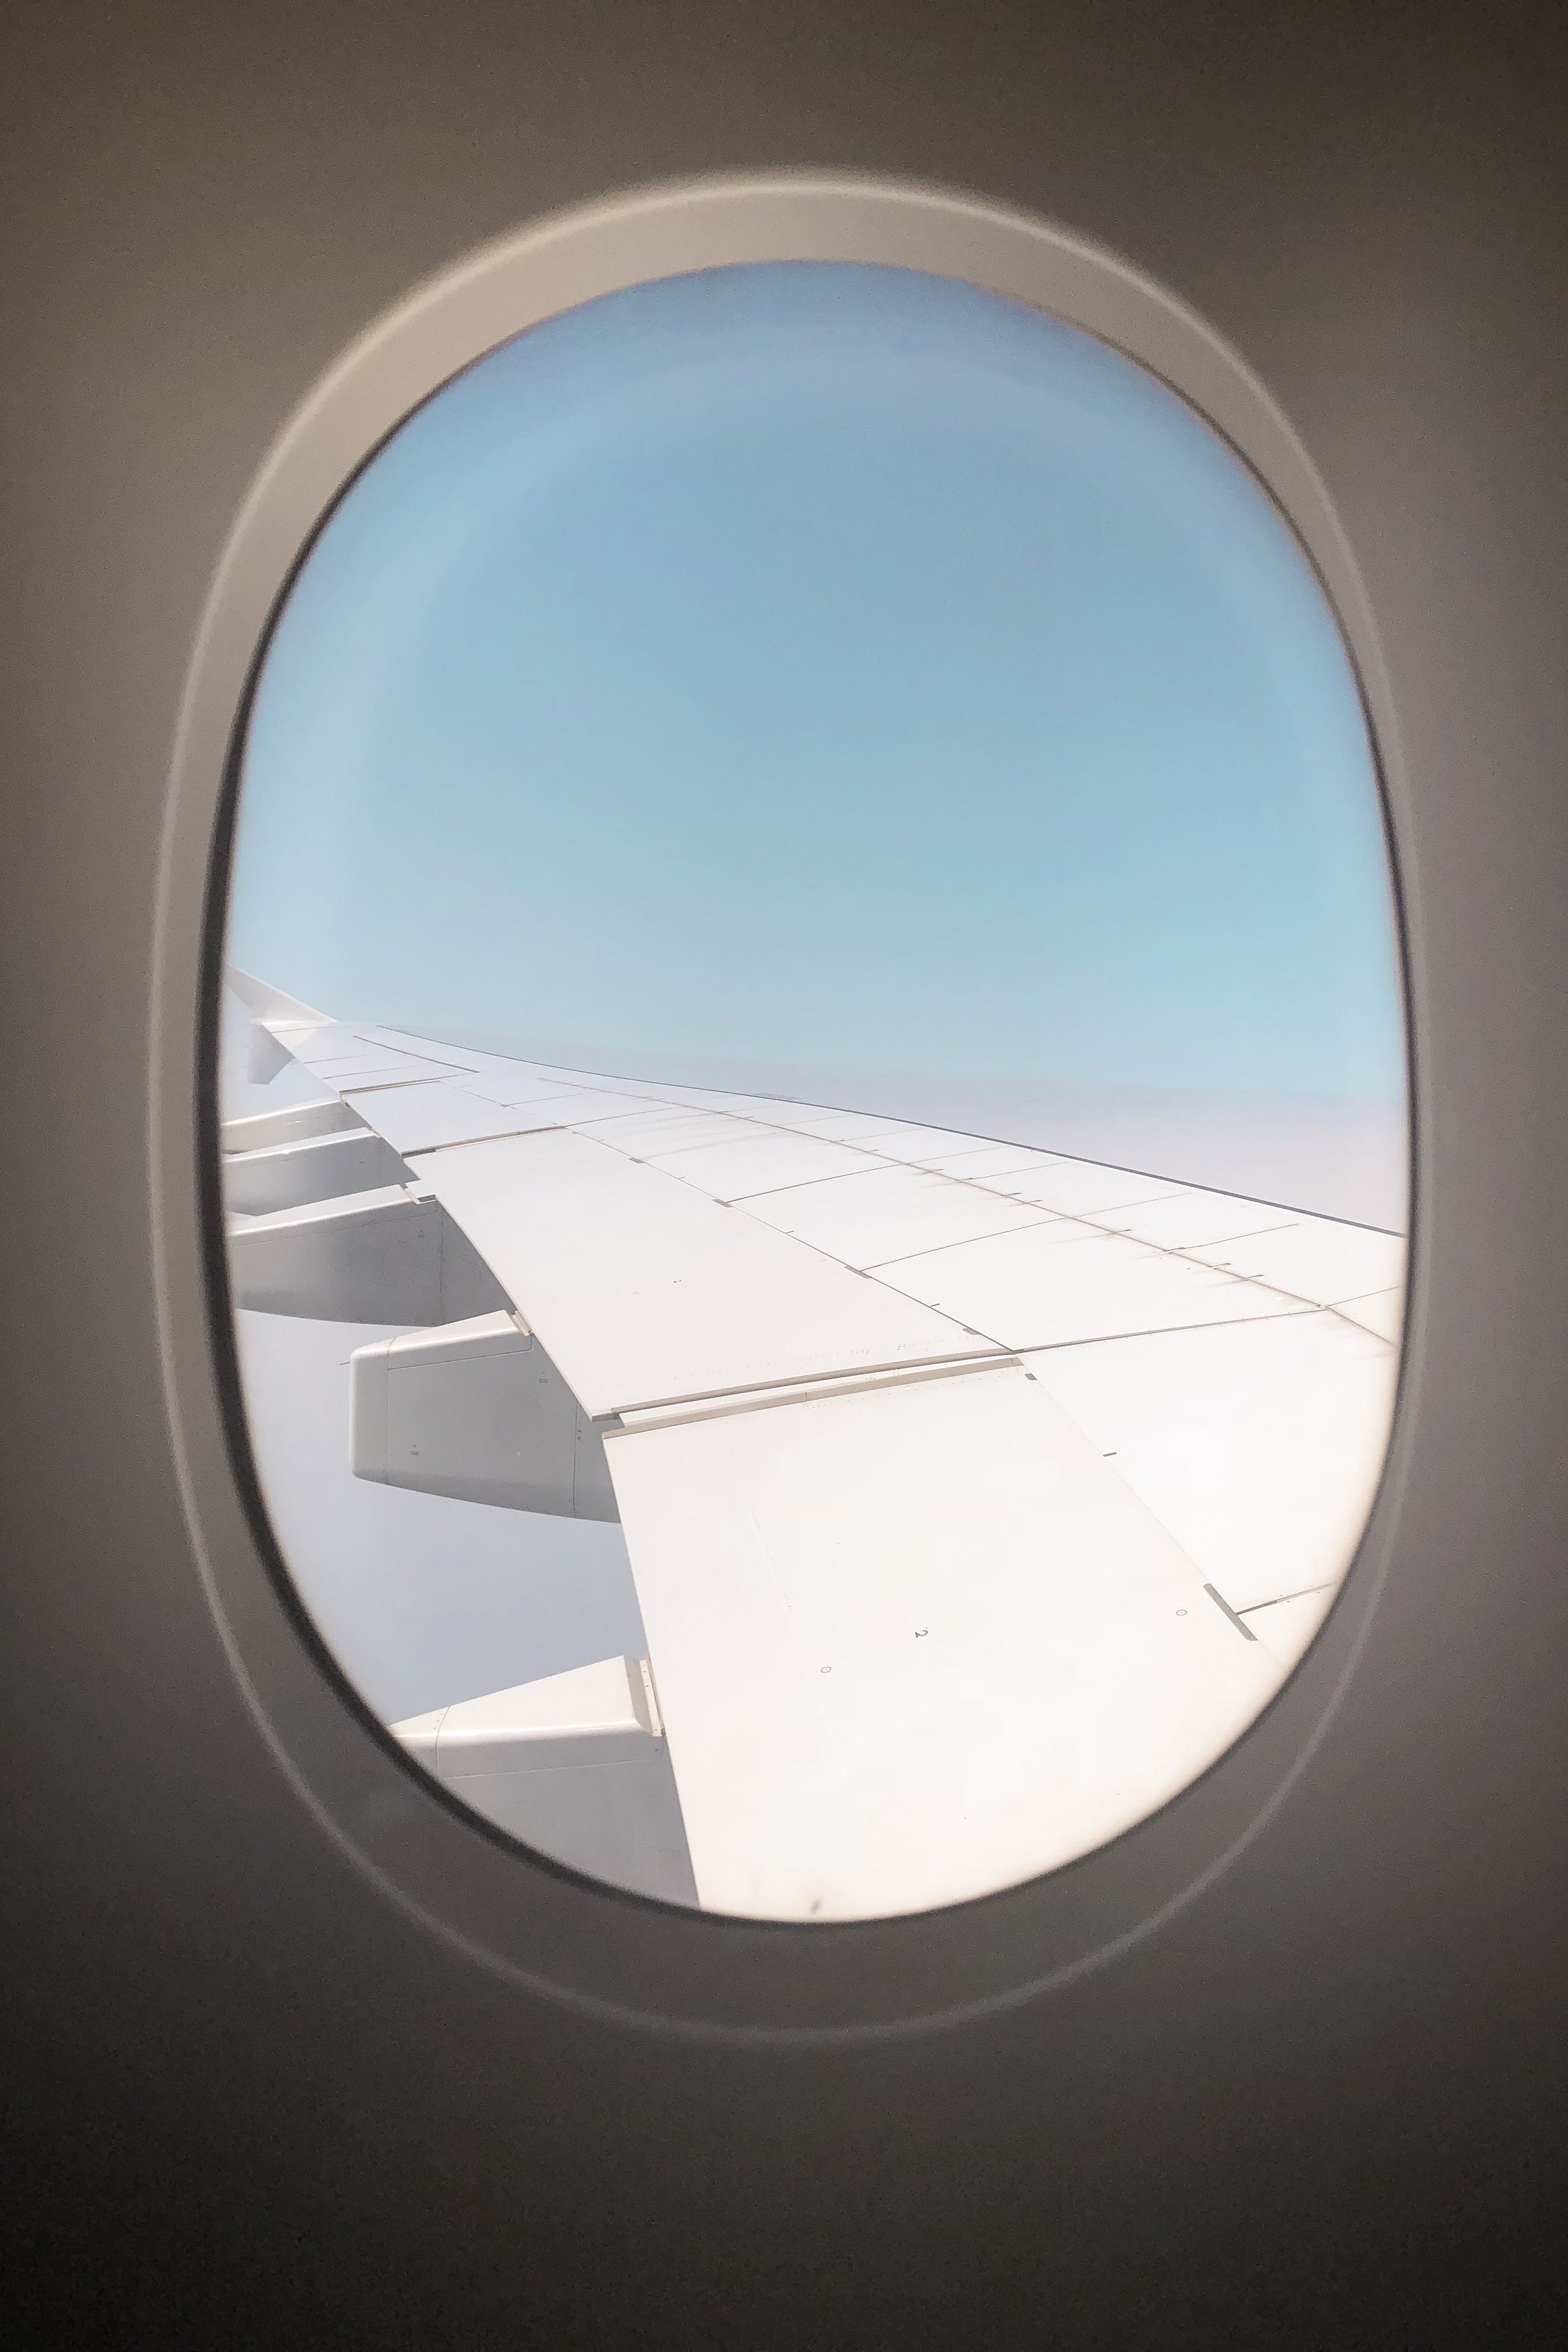 Window Showing Airplane Wing